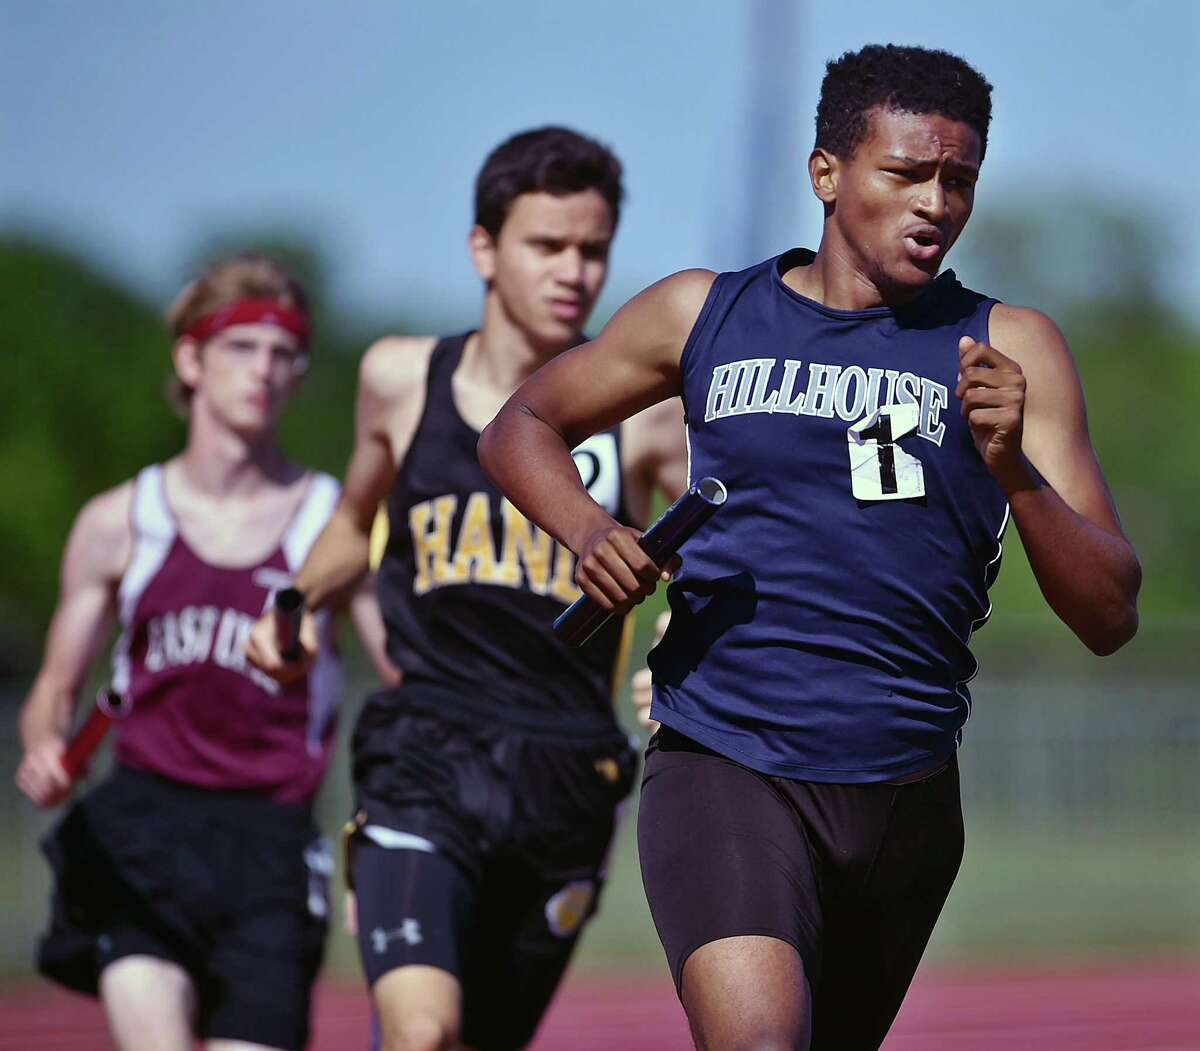 Senior Manasseh Bekele runs the final leg of the 4x800 relay, propelling Hillhouse to first place at the Class MM championship in 2018.